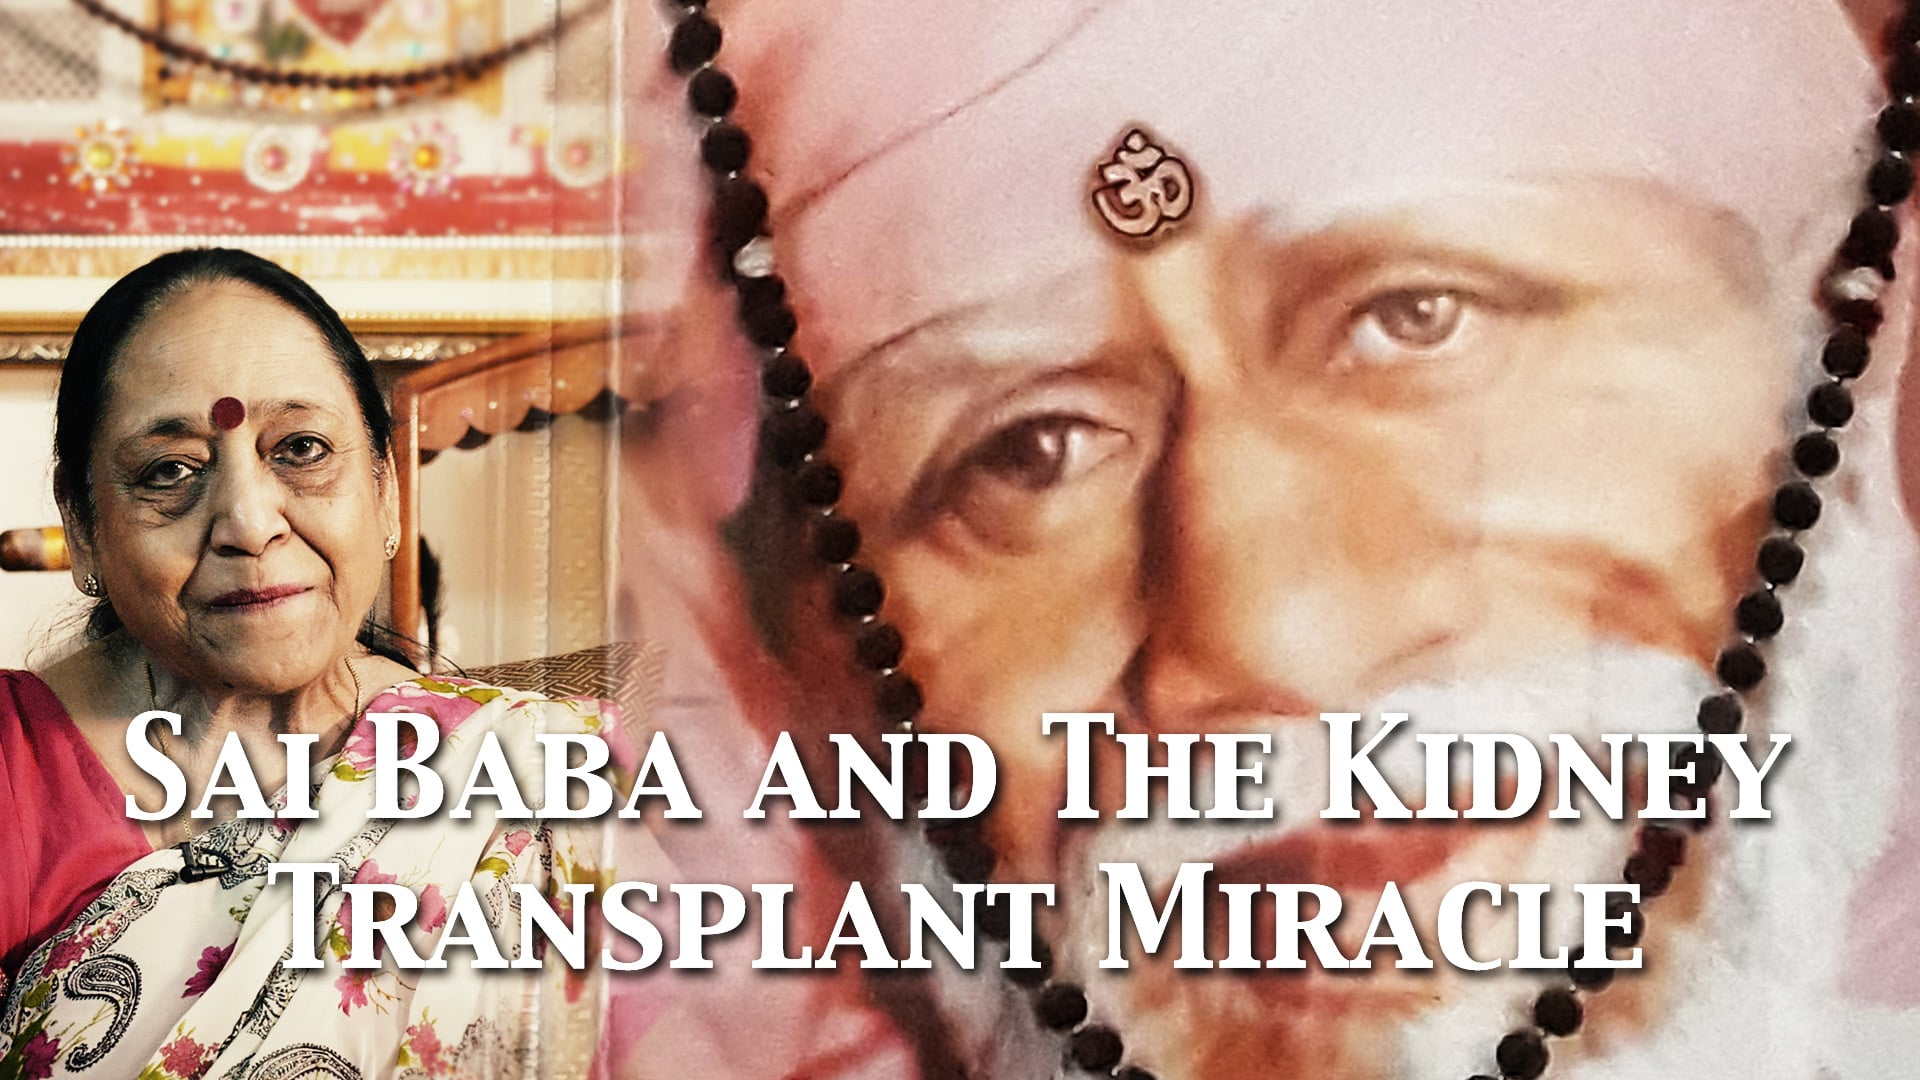 Sai Baba and the Kidney Transplant Miracle